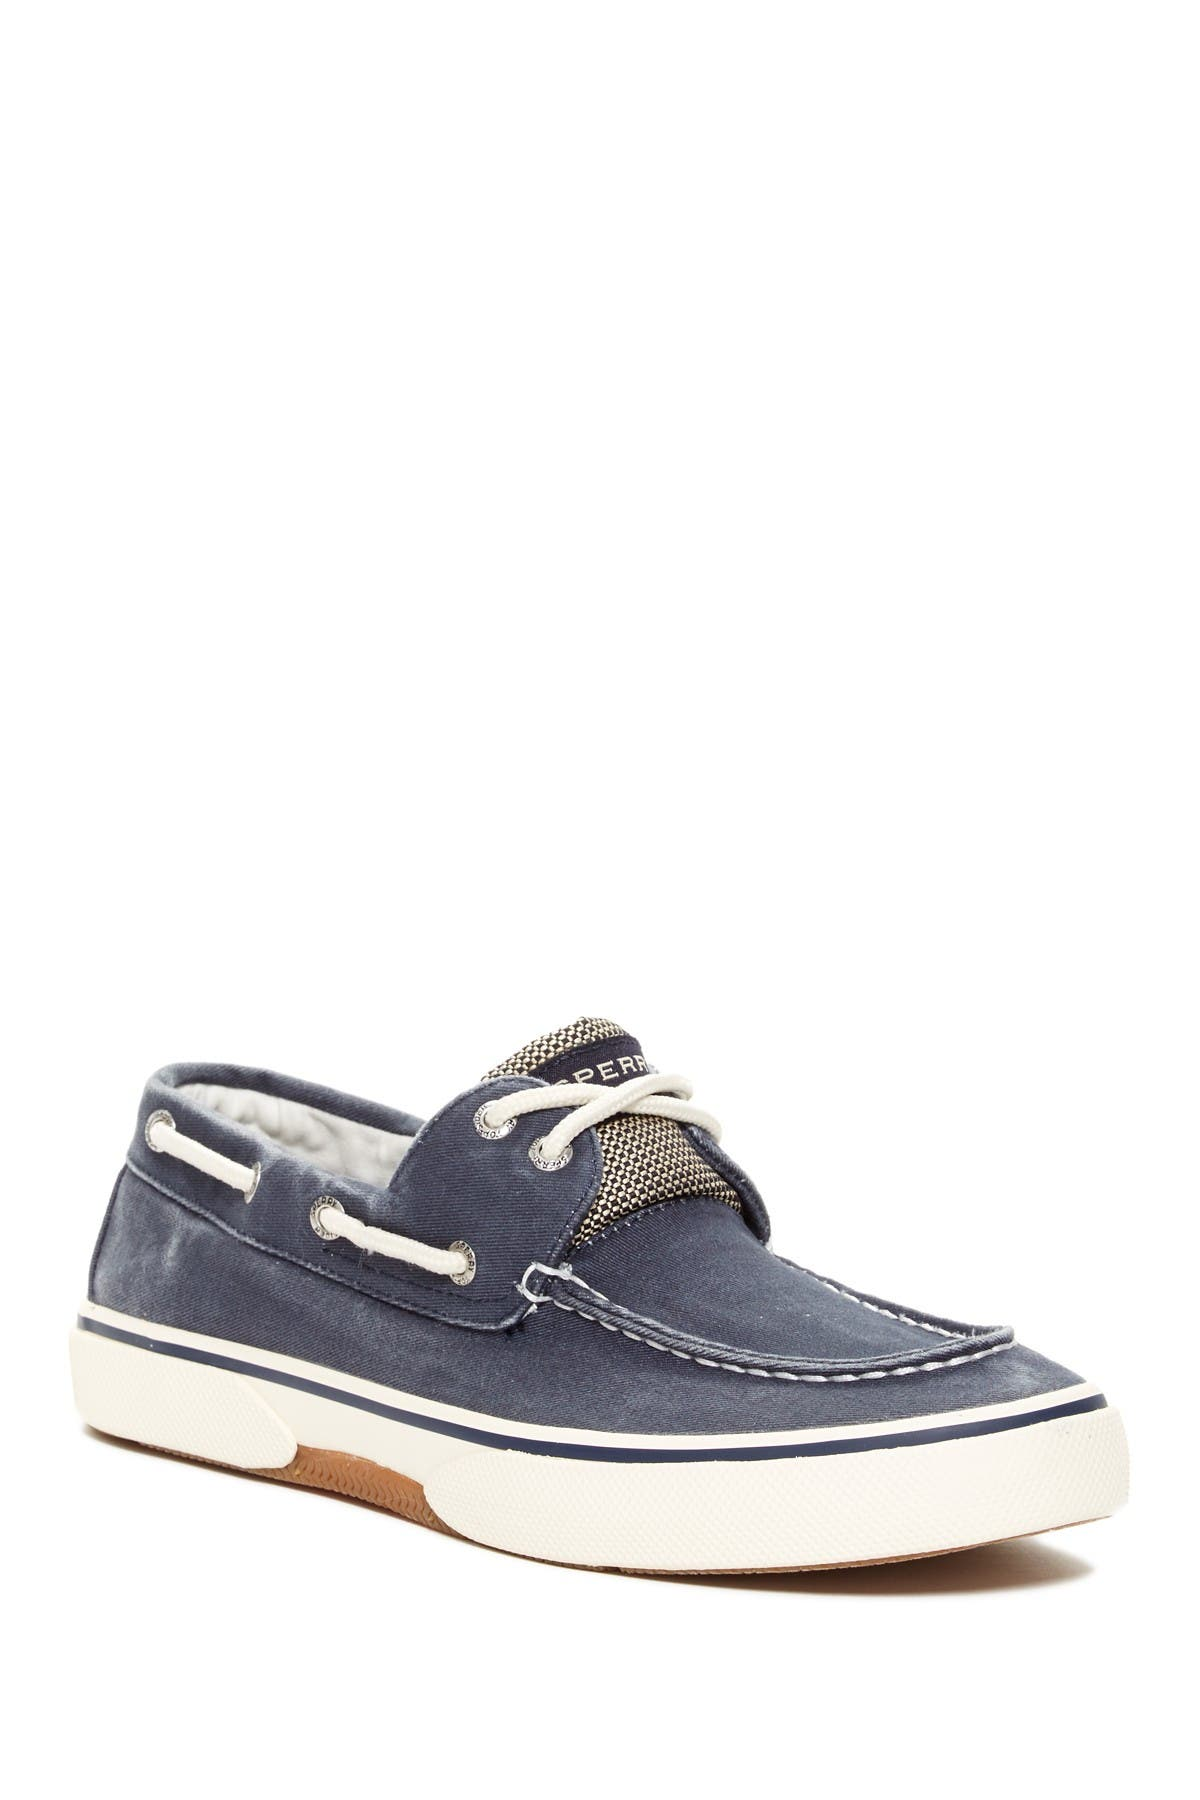 Image of Sperry Halyard 2-Eye Boat Shoe